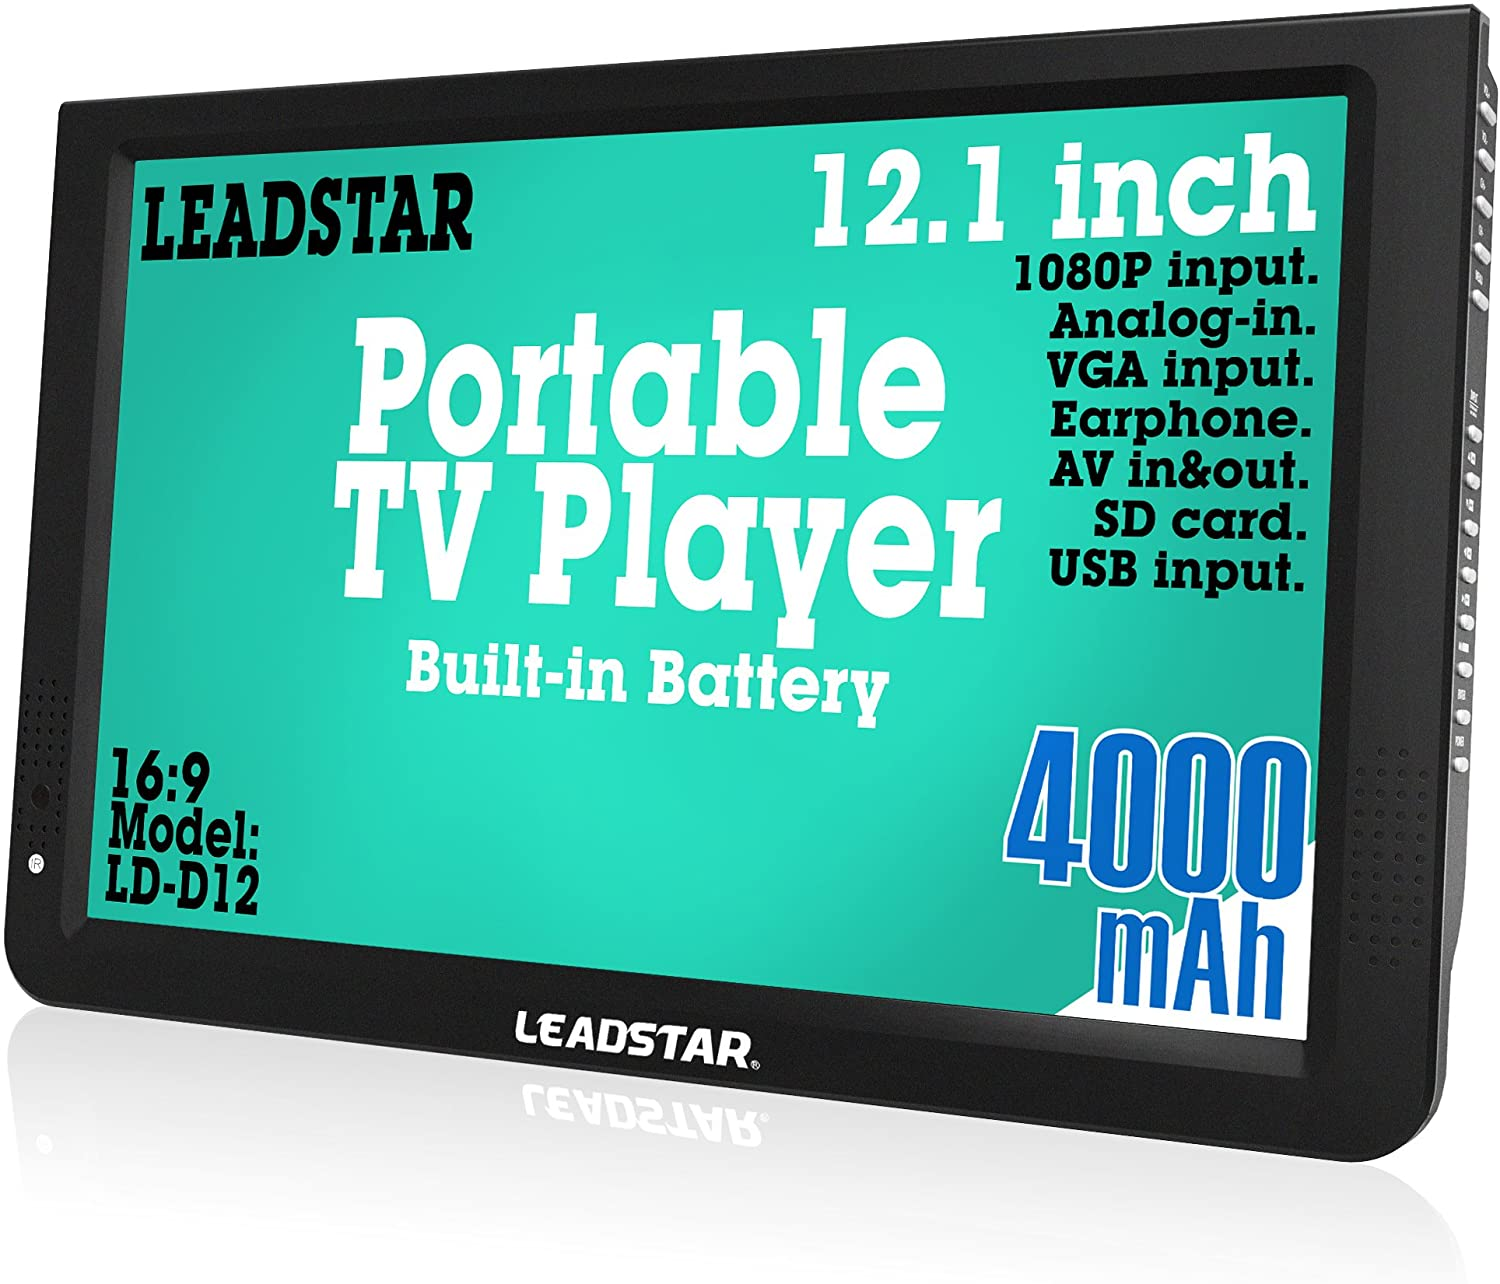 Multimedia Player Support USB Card LEADSTAR 7 Inch Portable Small Digital ATSC TFT HD Screen Freeview LED TV for Car,Caravan,Camping,Outdoor or Kitchen.Built-in Battery Television//Monitor with FM